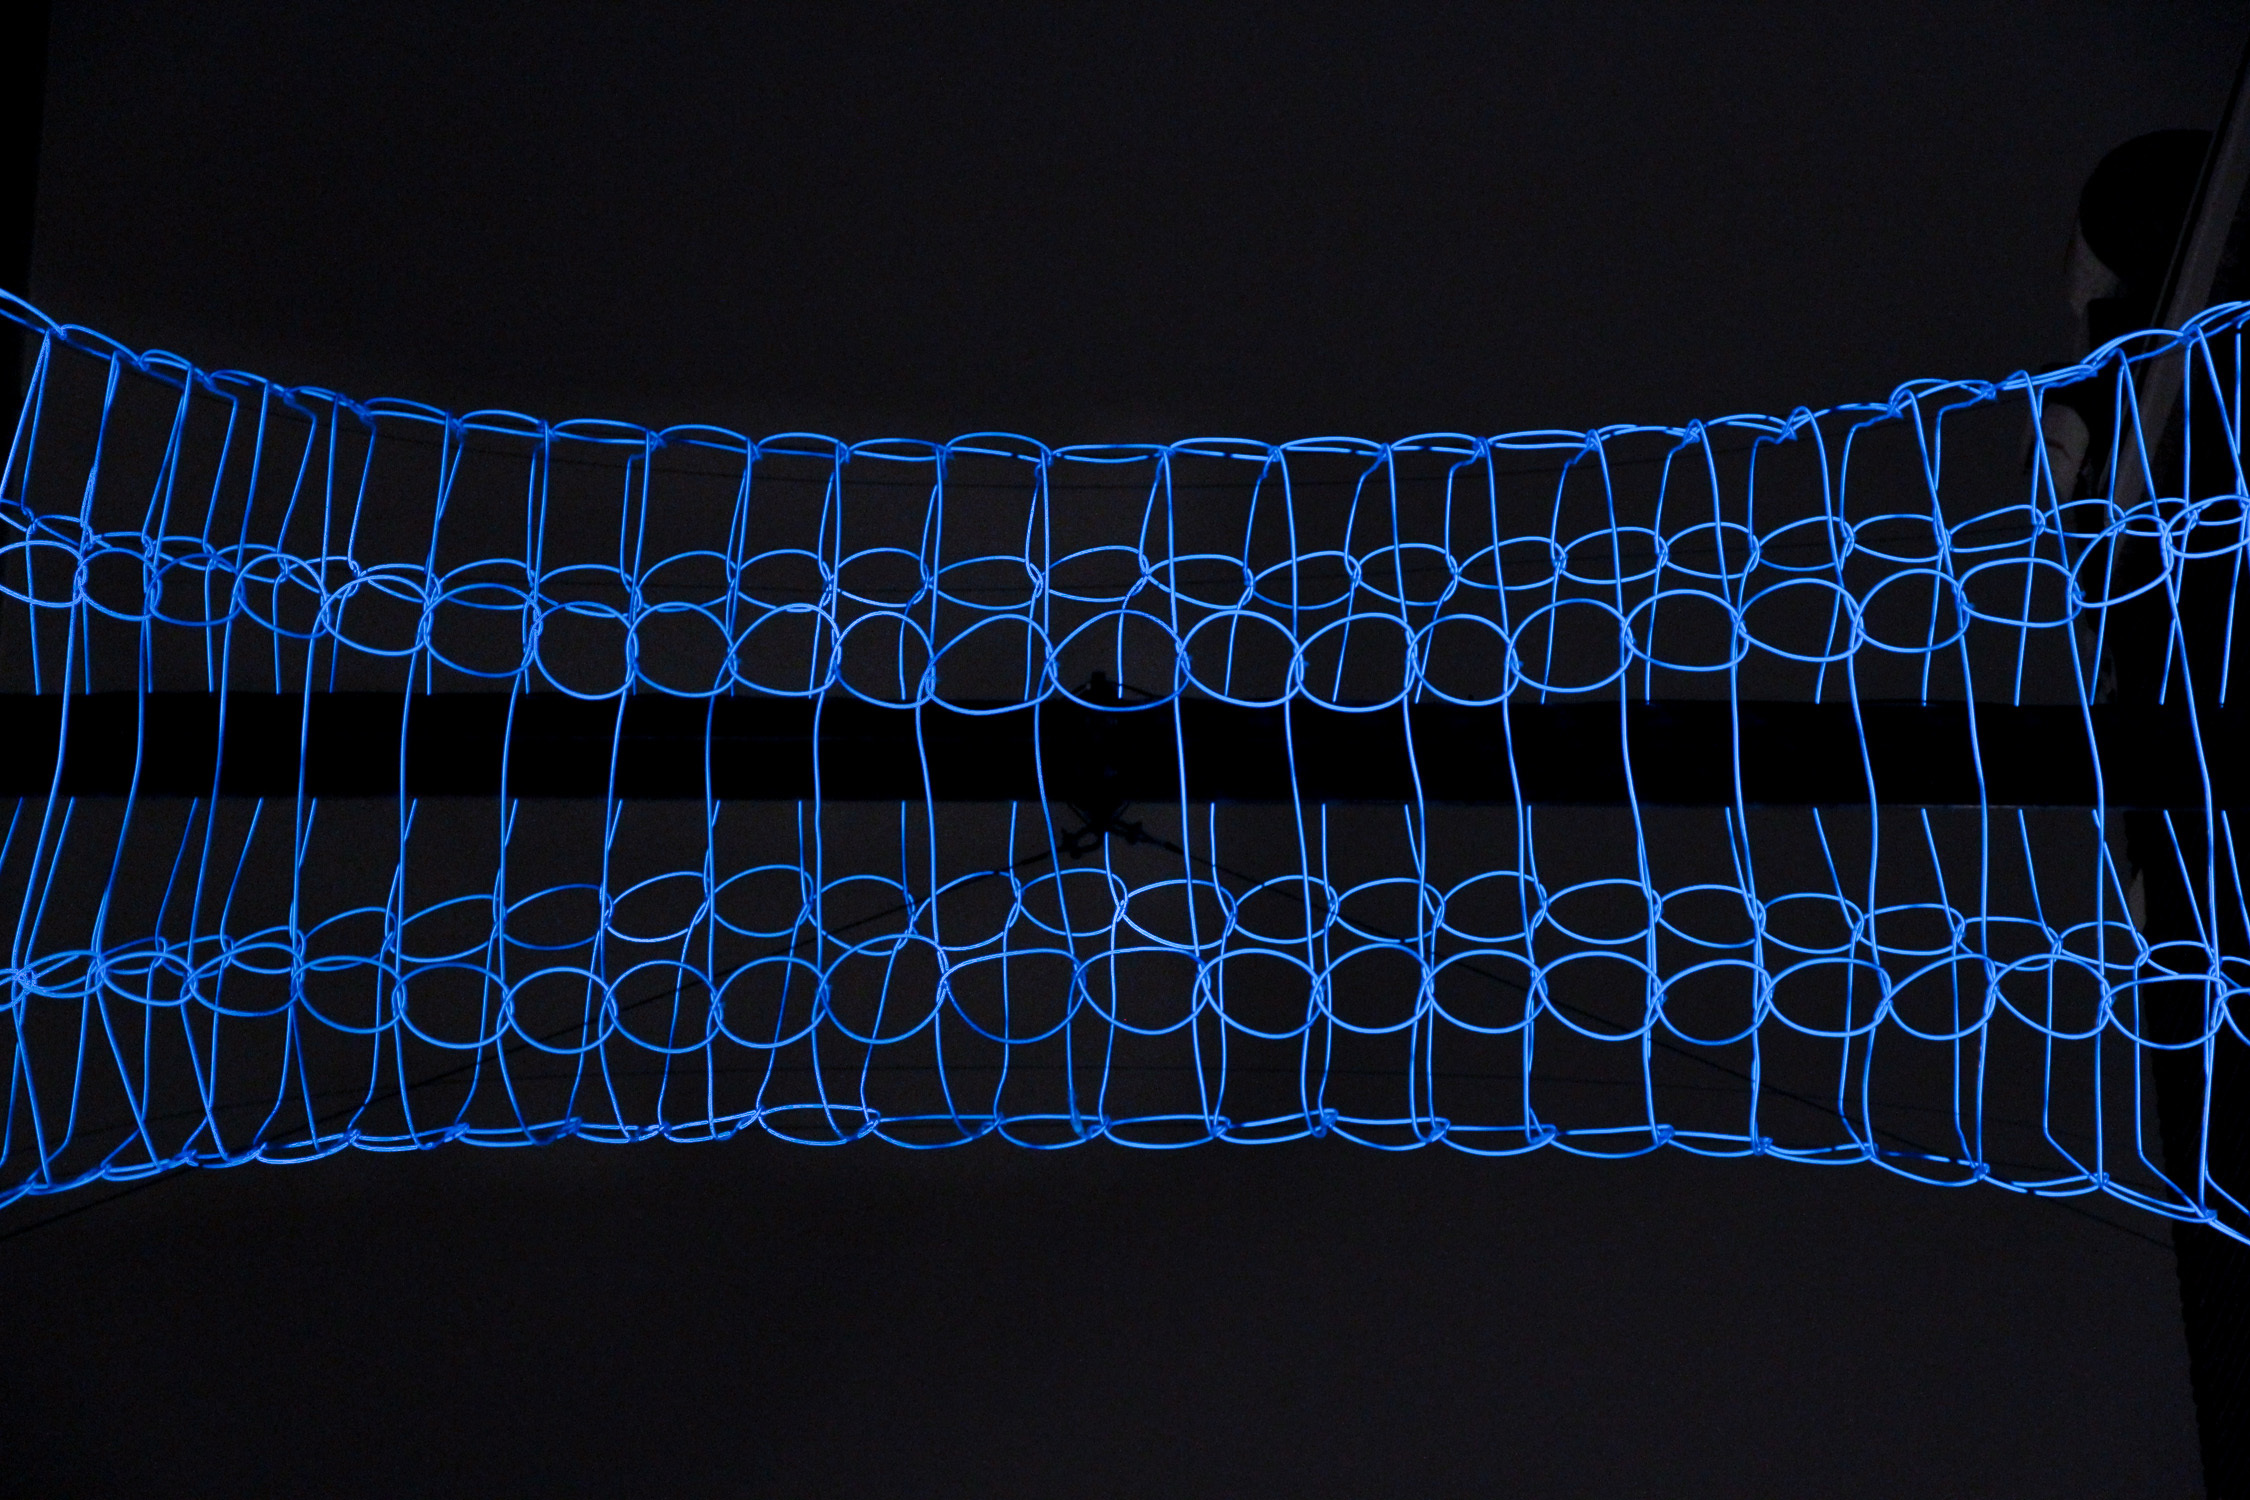 Weft by Meagen Streader is a vortex of electricity and light